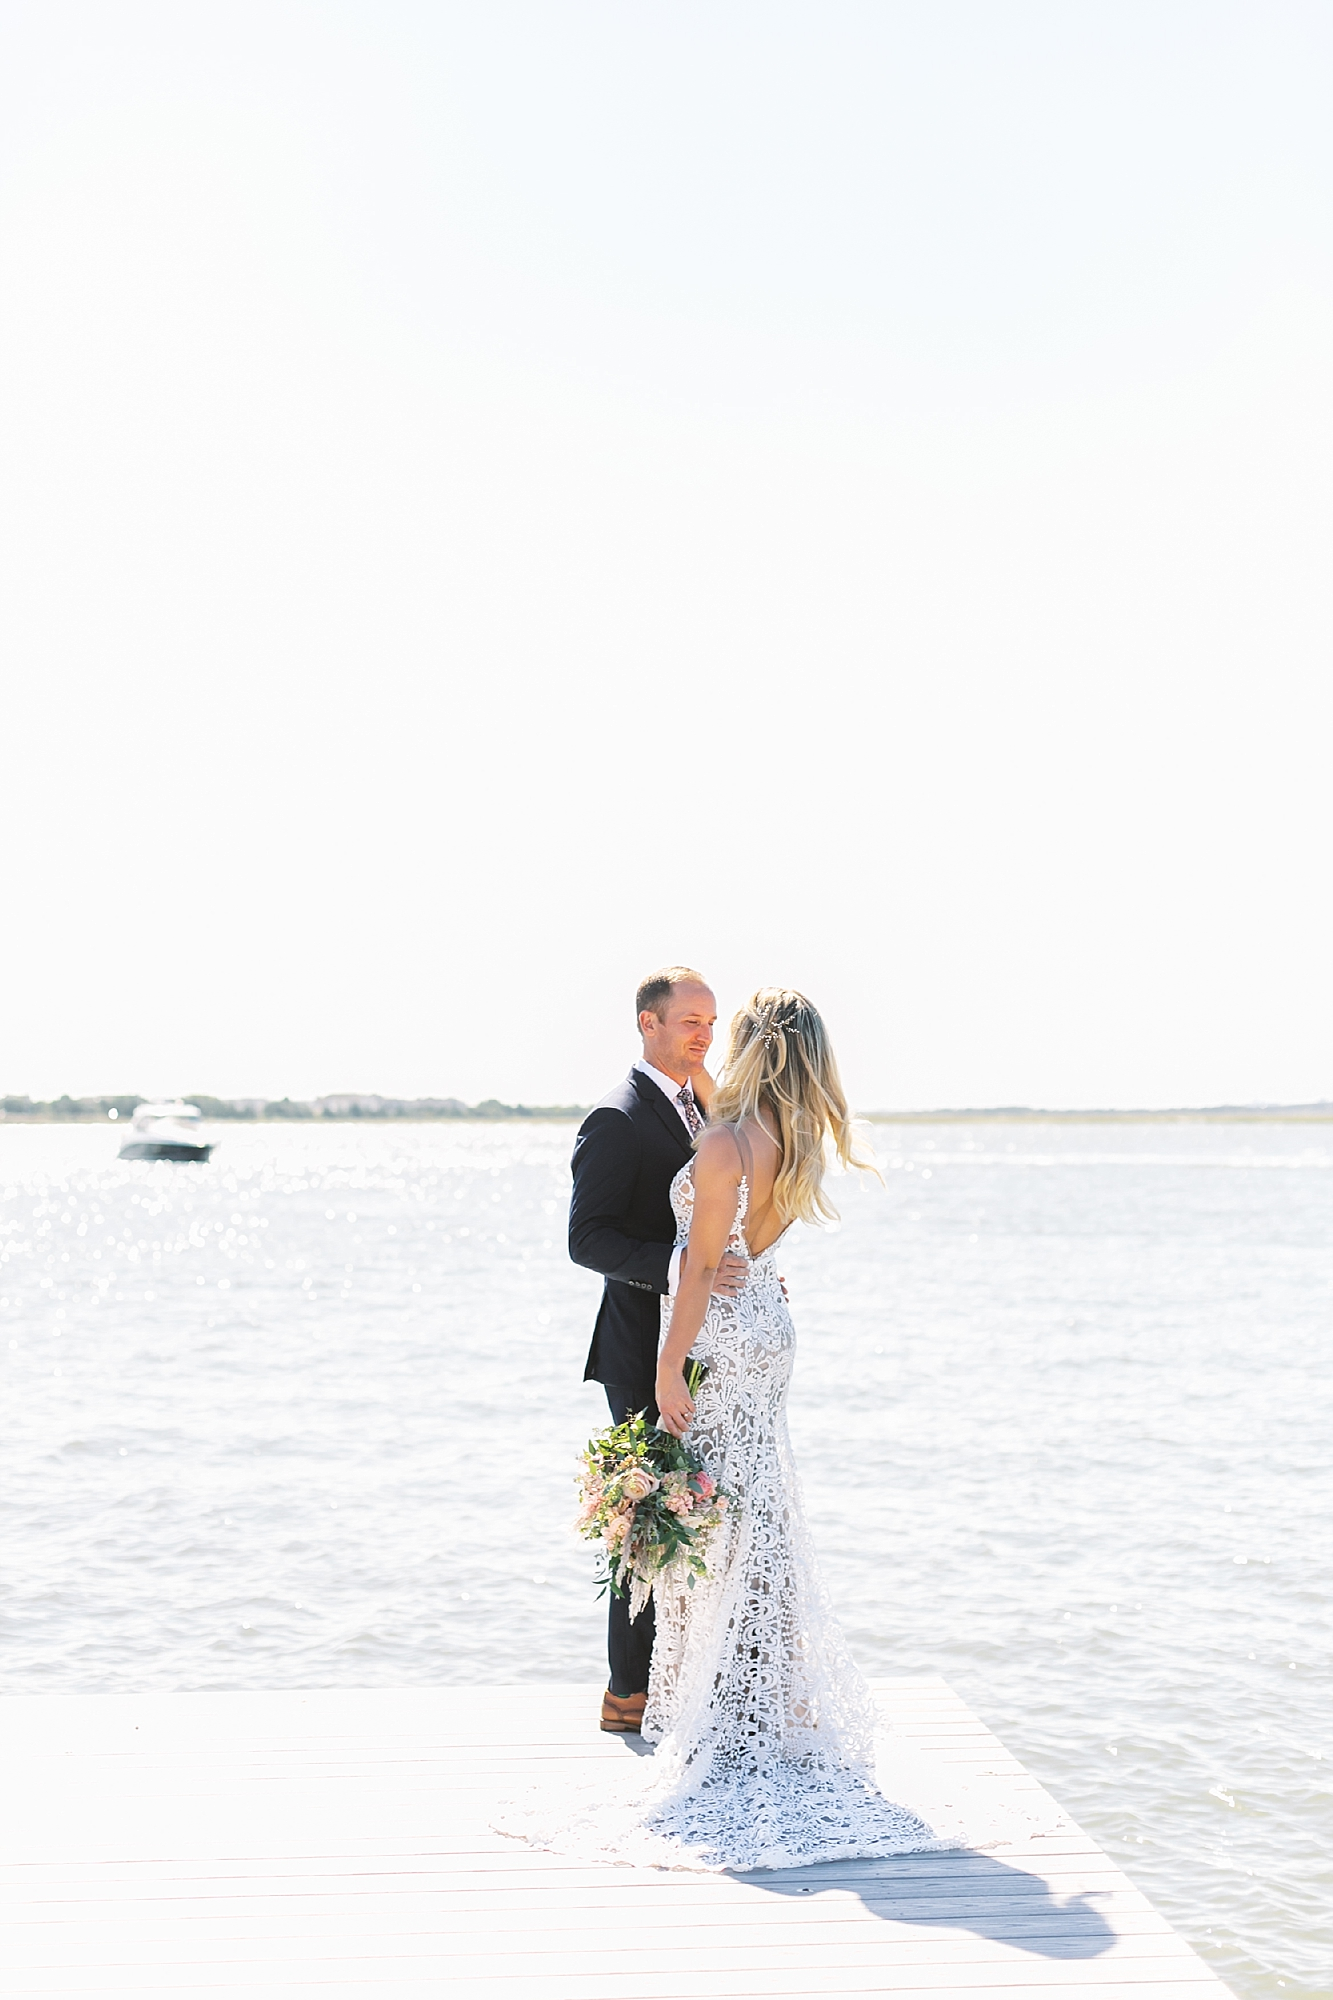 Stylish and Free Spirited Wedding Photography at One Atlantic in Atlantic City NJ by Magdalena Studios 0039 2